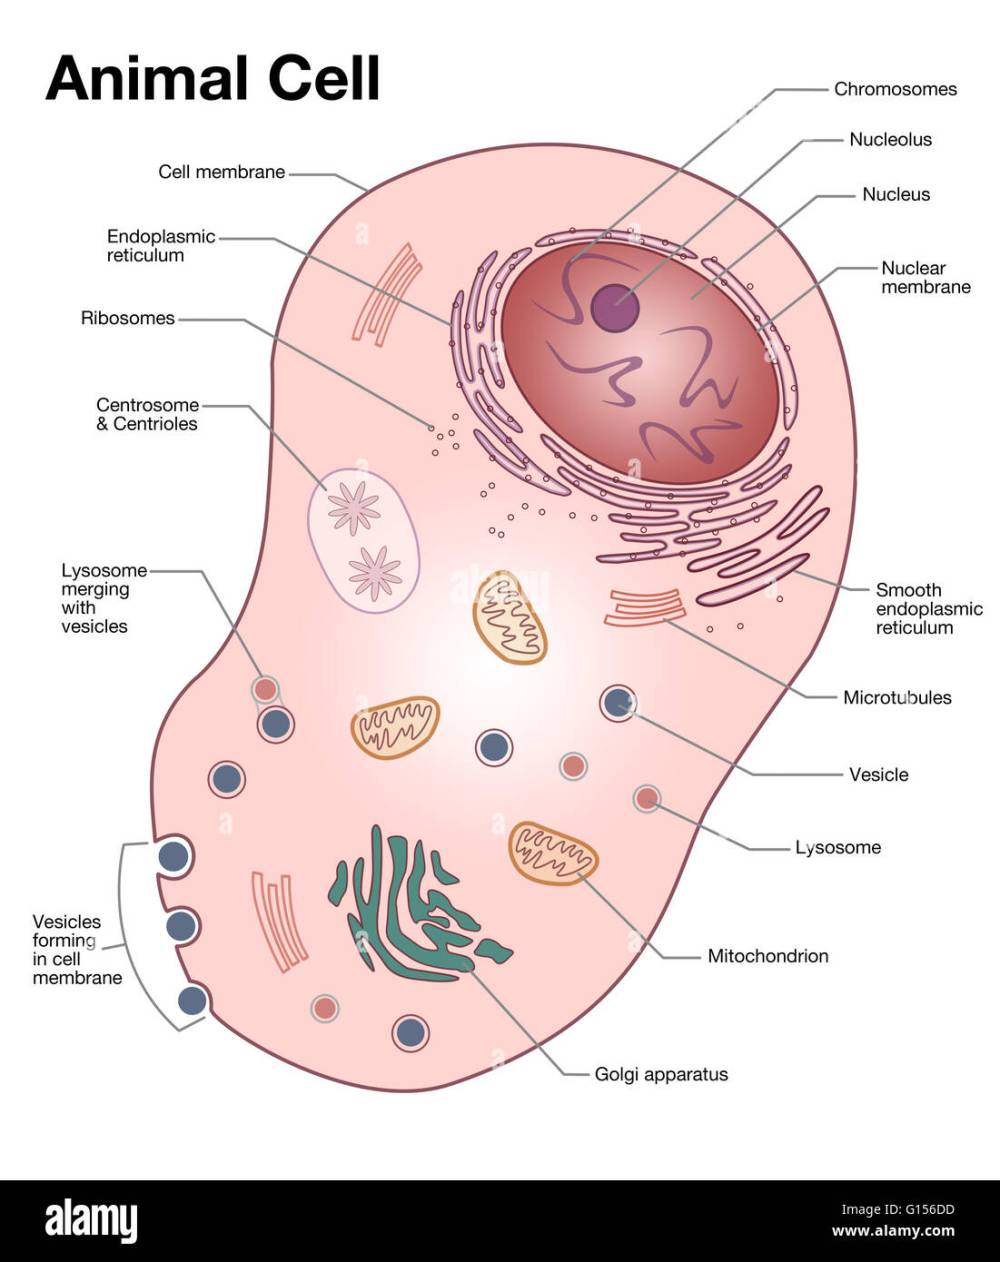 medium resolution of diagram of a typical animal cell with the important features labeled